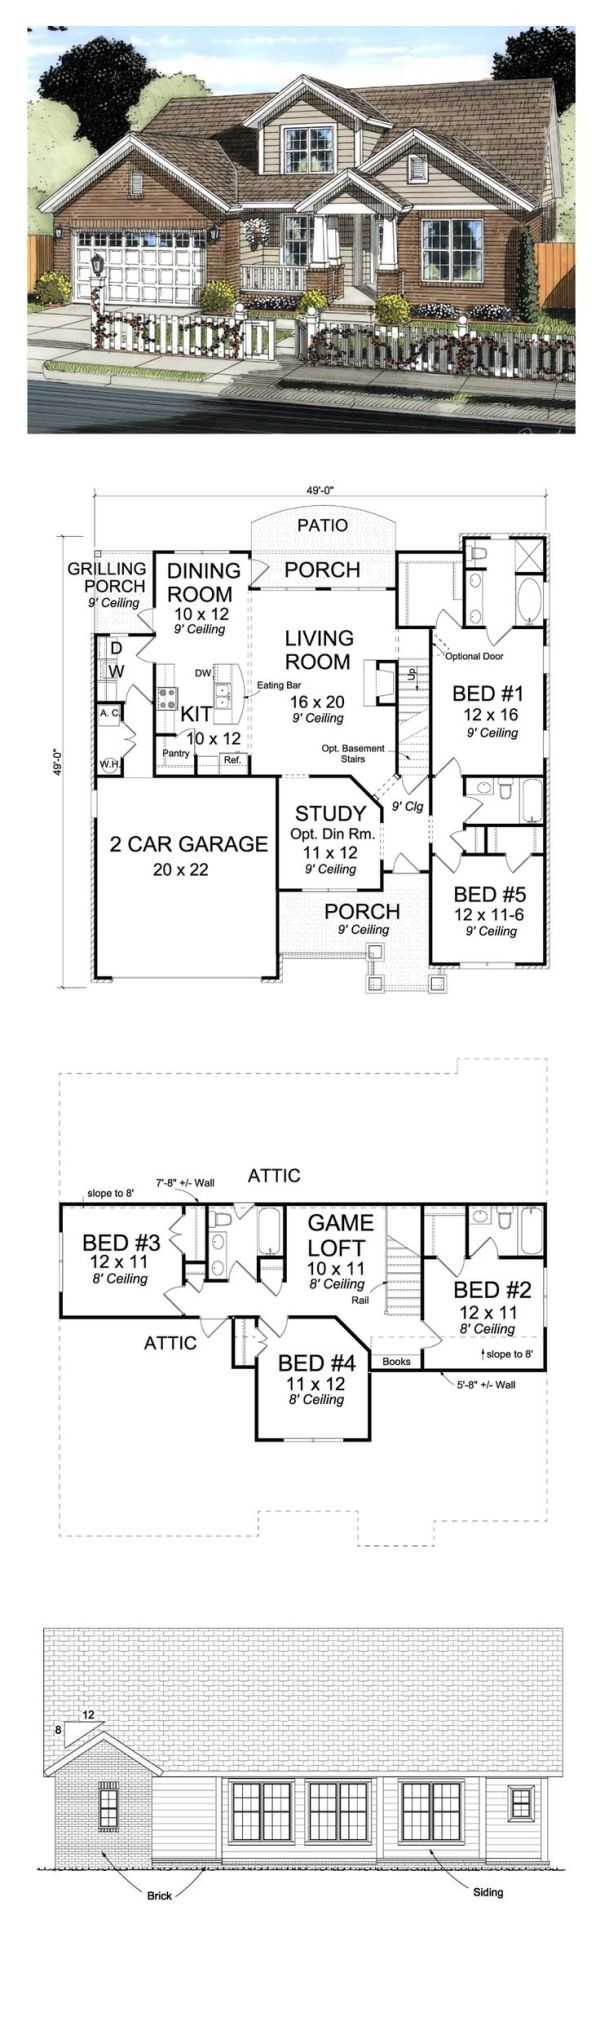 Craftsman House Plan 61421   Total Living Area: 2317 sq. ft., 5 bedrooms and 4 bathrooms. #houseplan #craftsmanhome by sonya